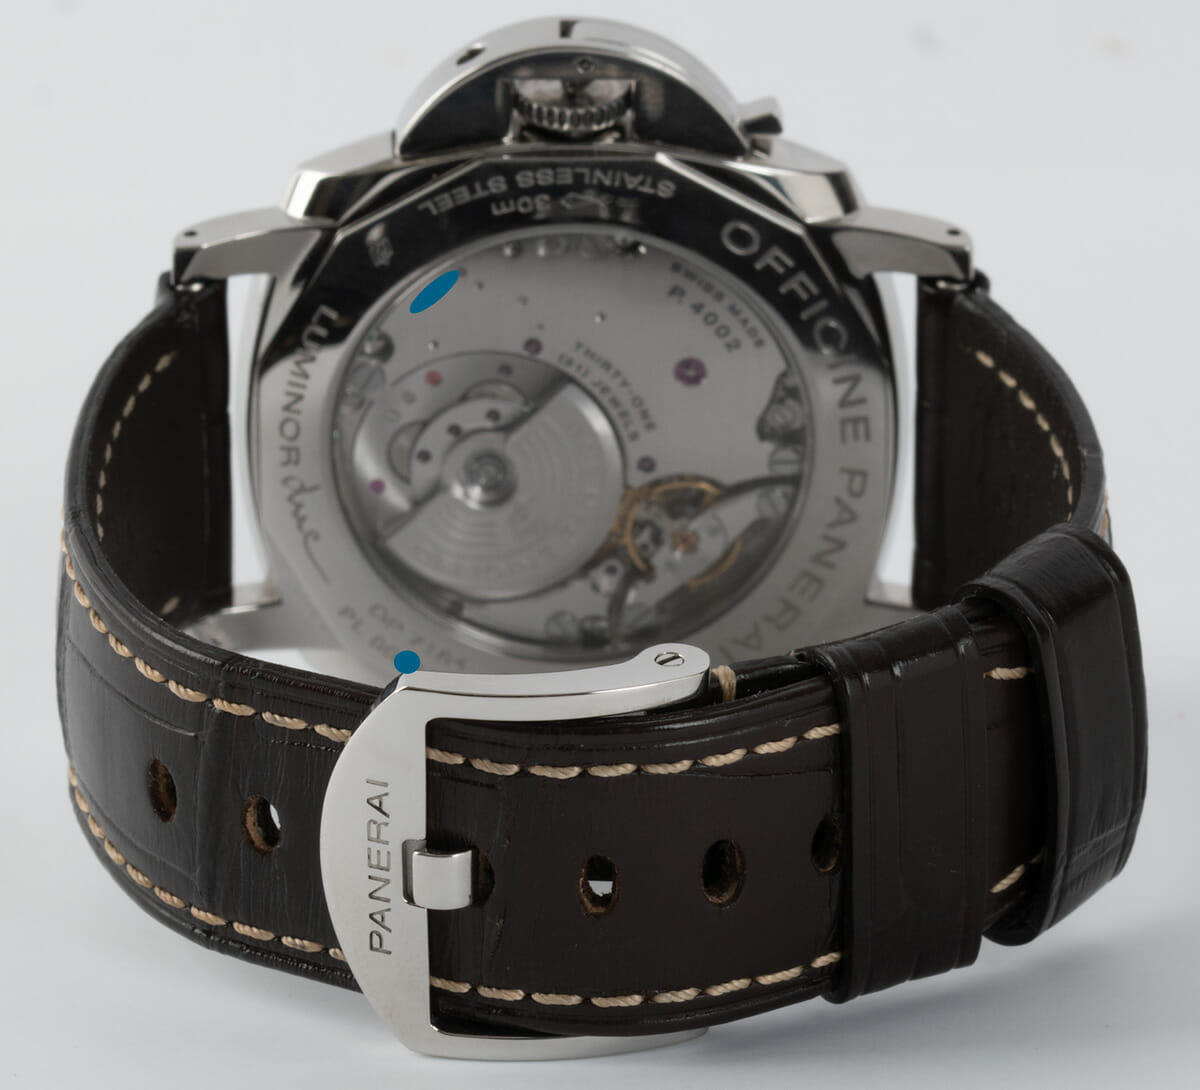 Rear / Band View of Luminor Due GMT